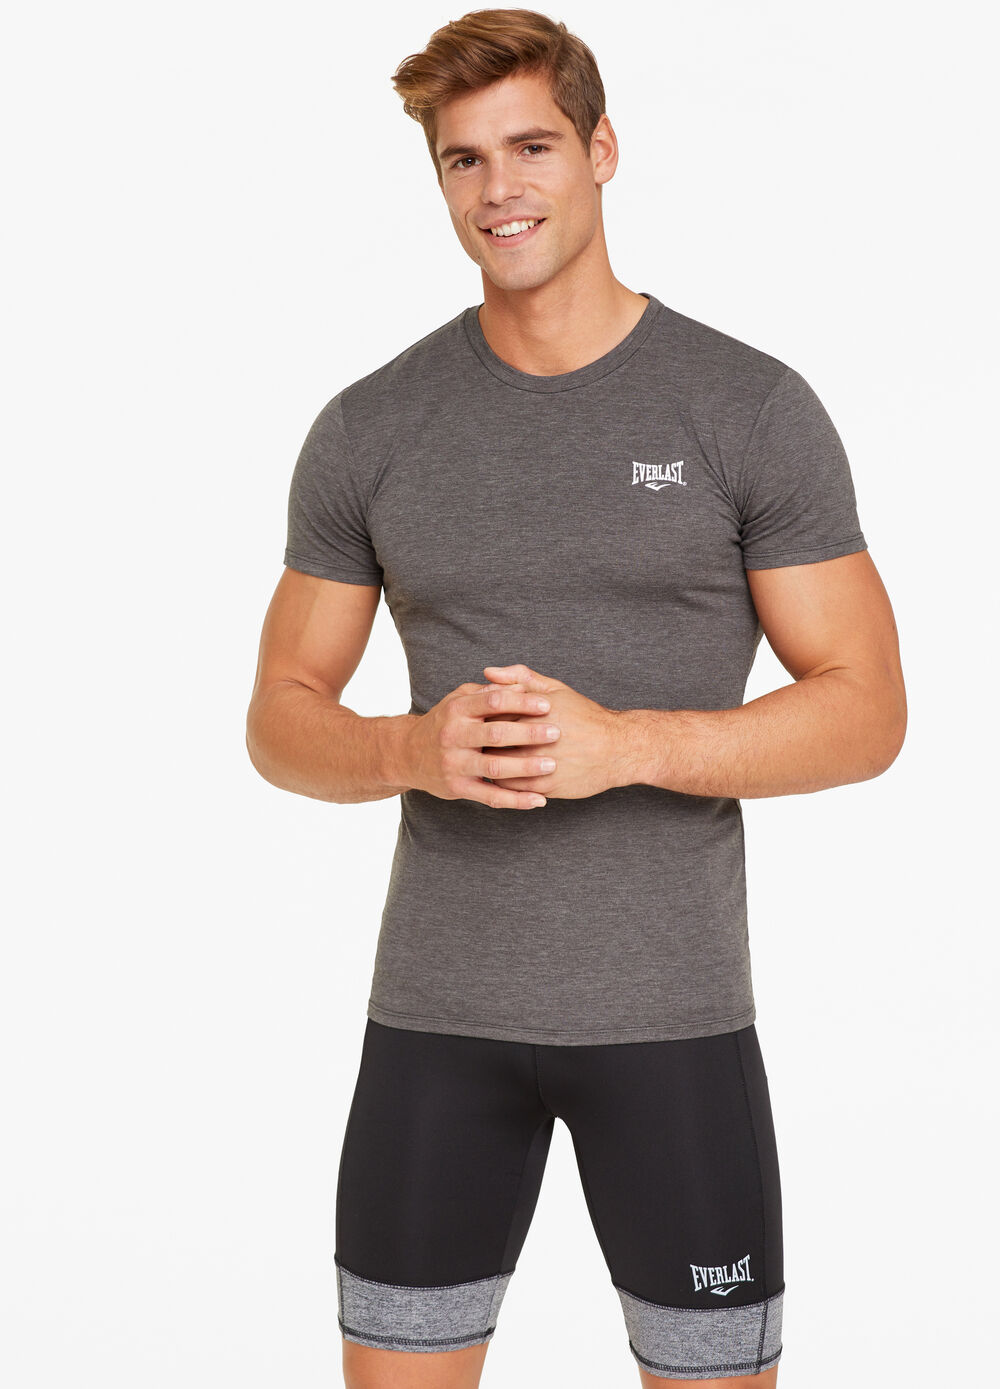 Everlast stretch T-shirt with crew neck